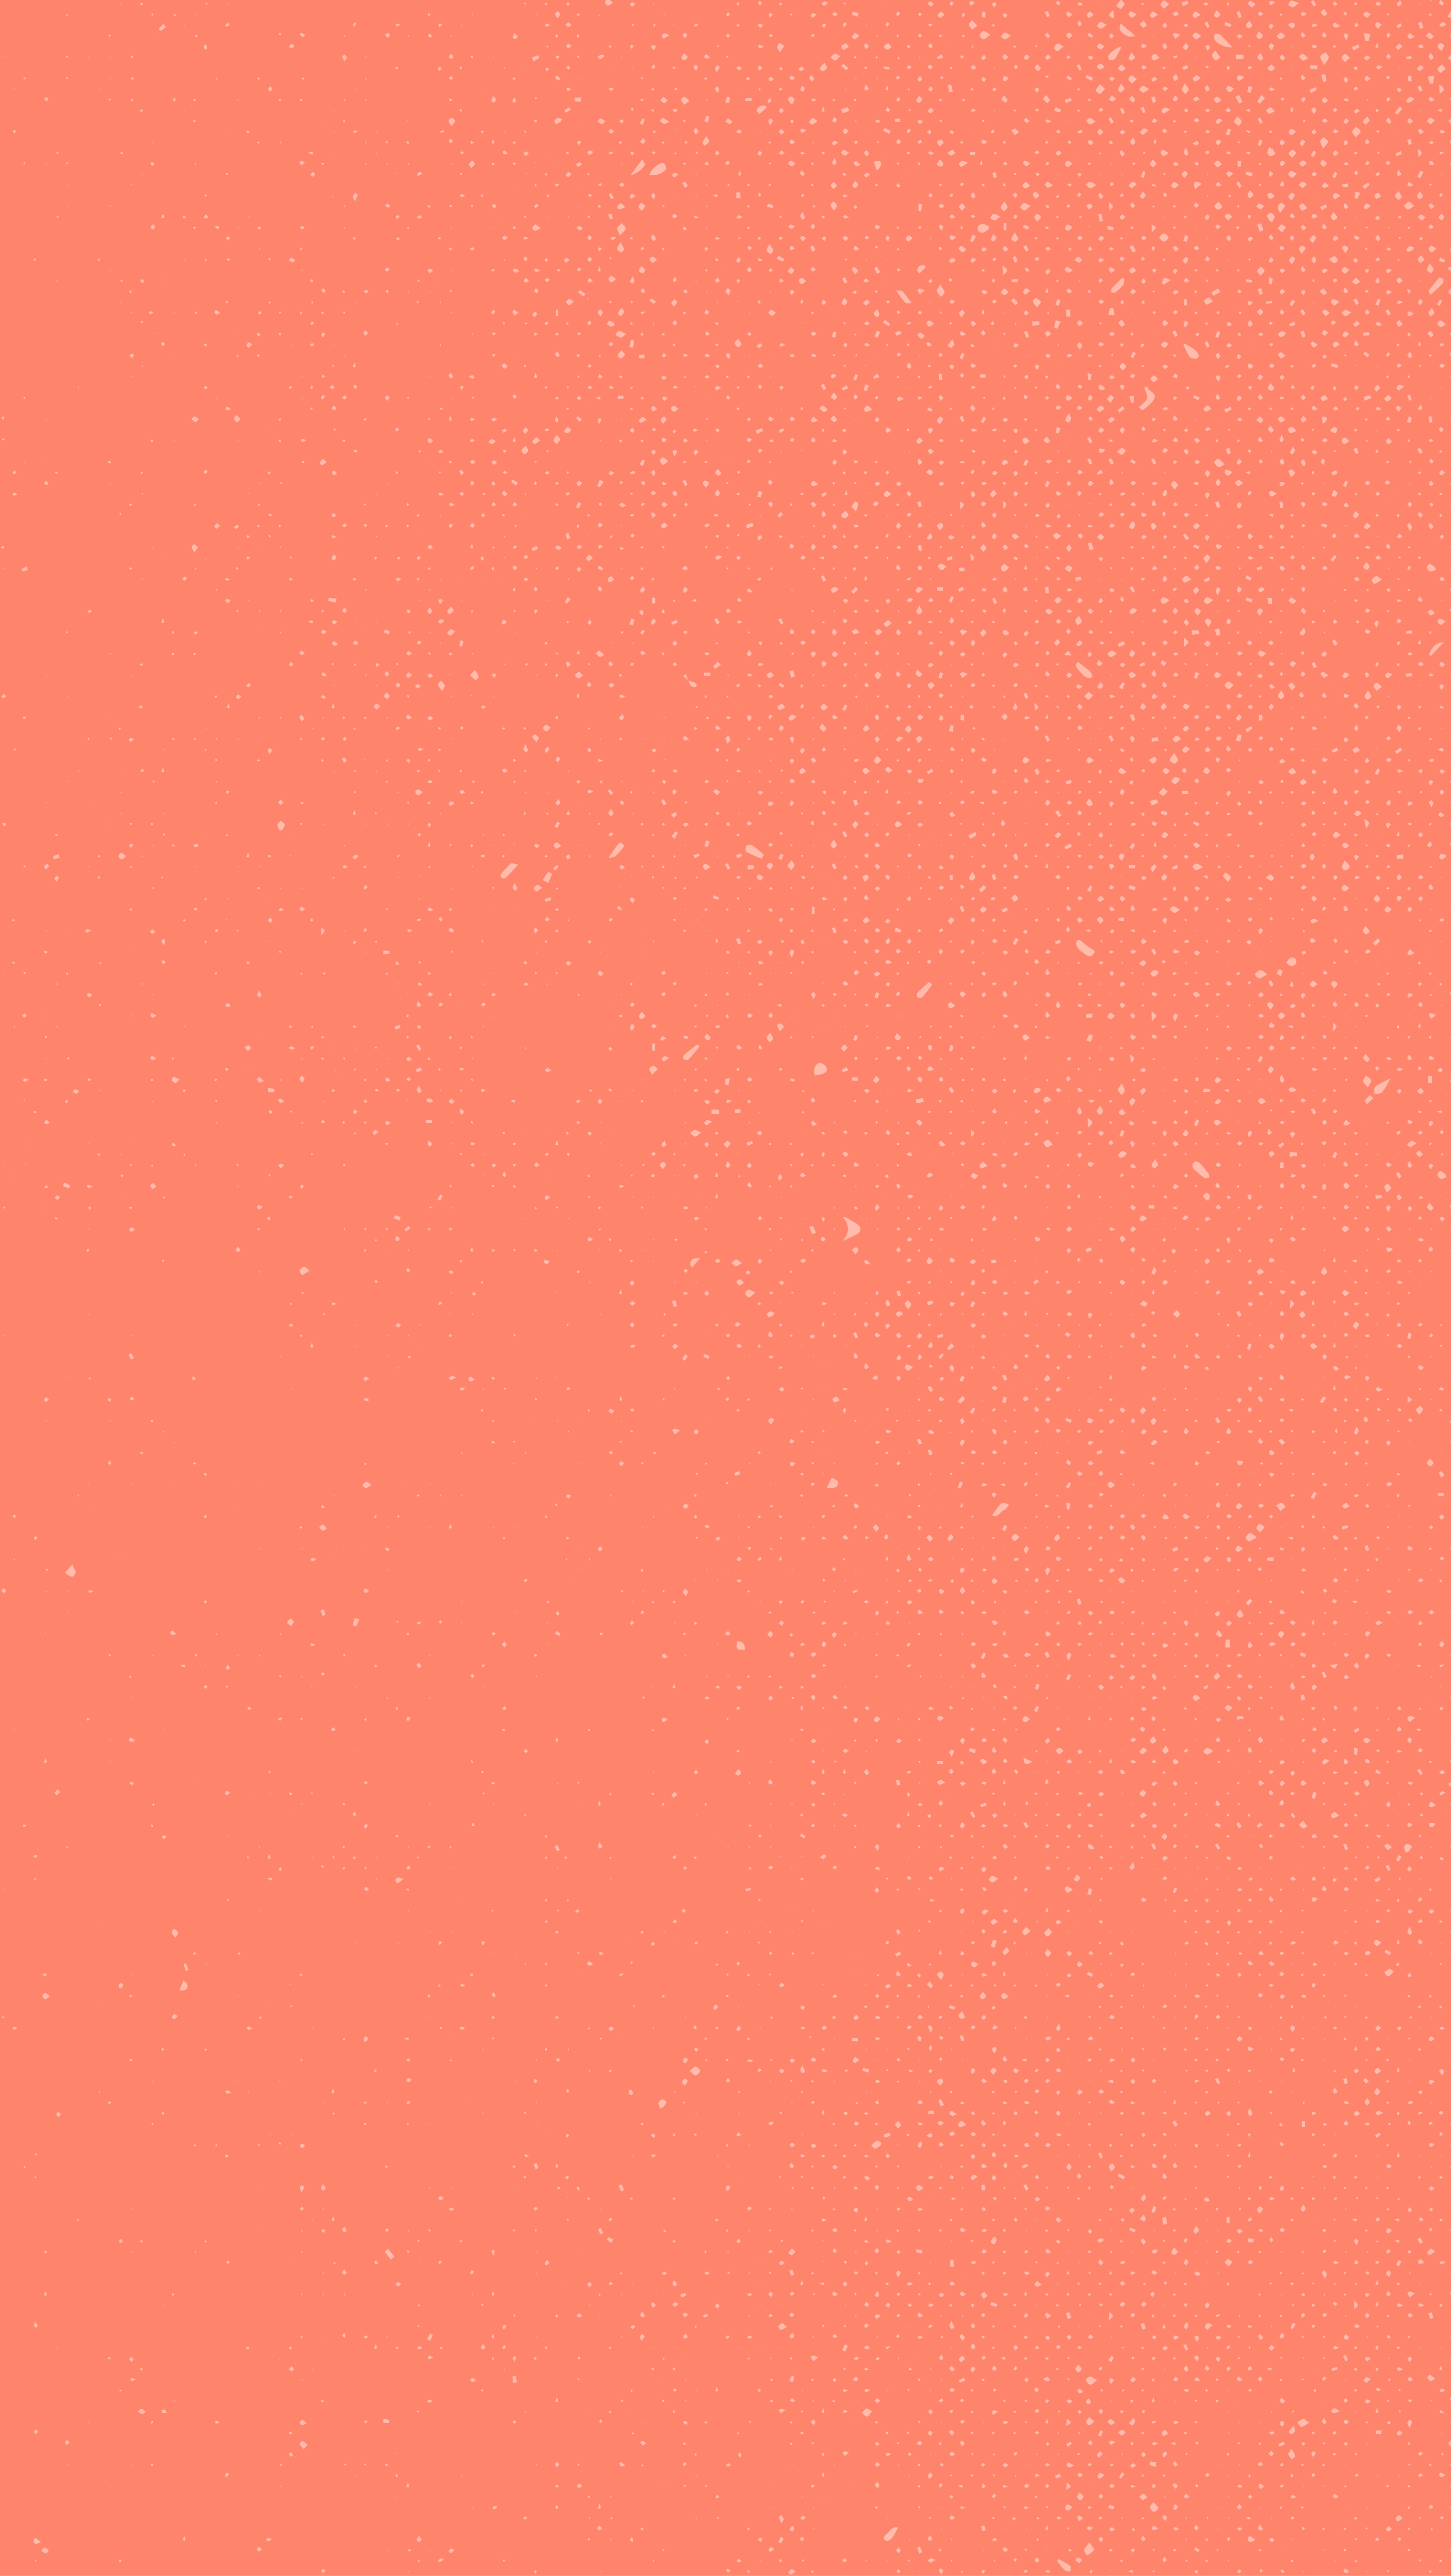 Watch - Color coral wallpaper video